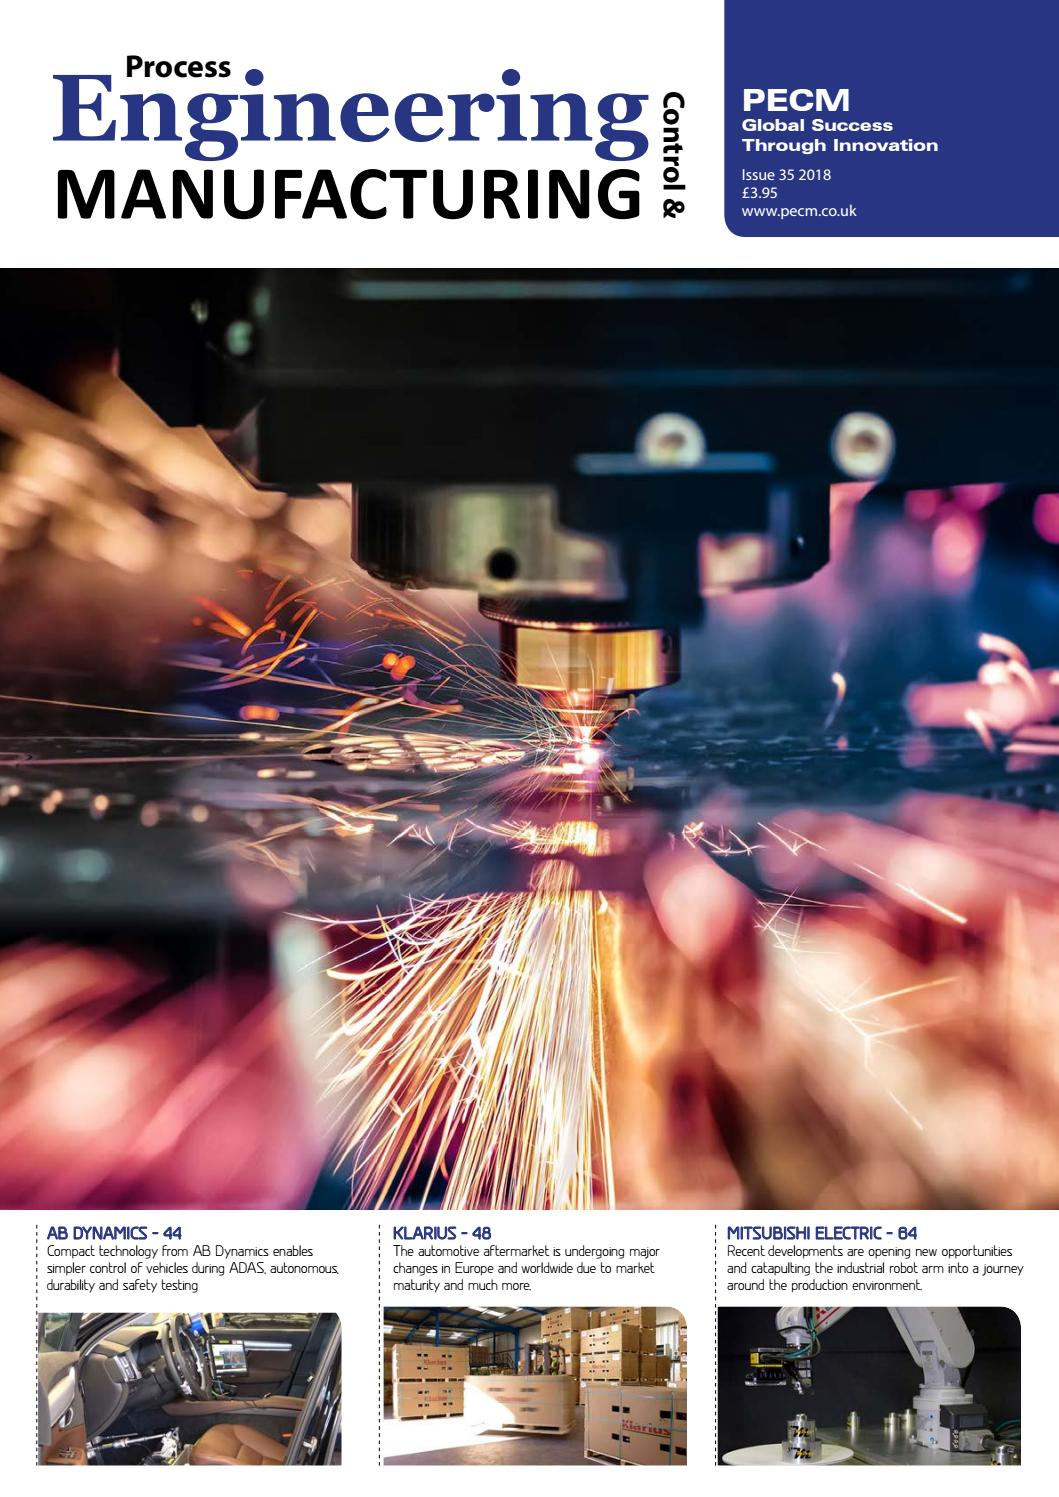 Process Engineering Control Manufacturing Issue 35 2018 By Mh Couk Ks Tools Short Circuit Protection Overvoltage 12v Media Global Issuu